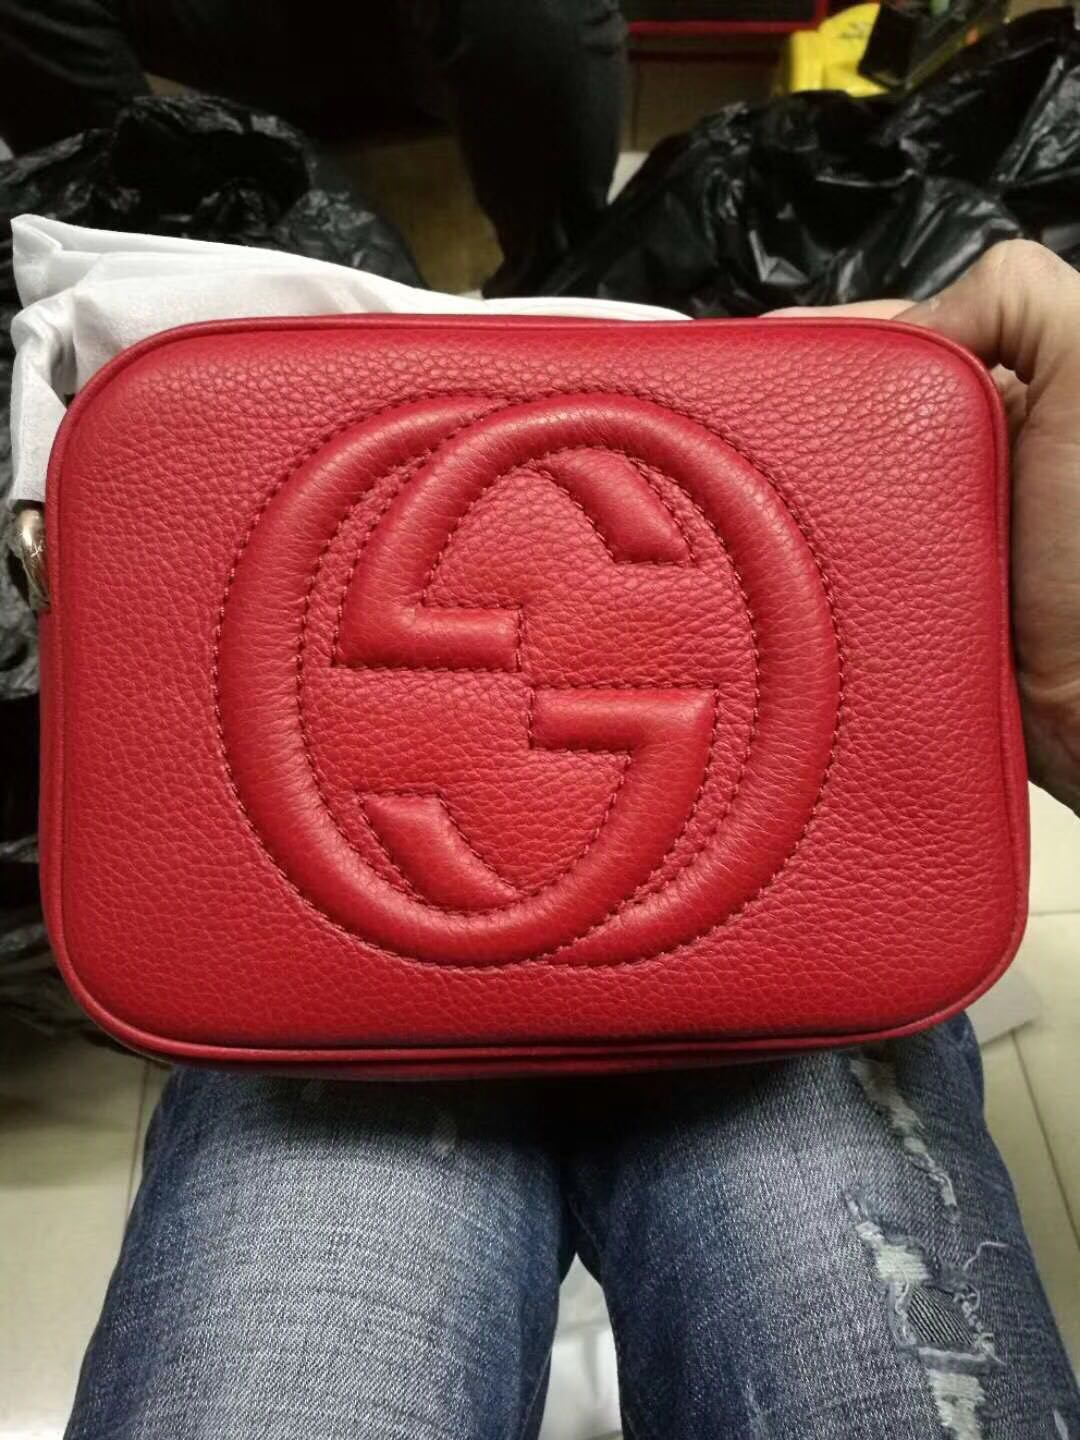 Gucci Soho Disco Bag, Real Picture